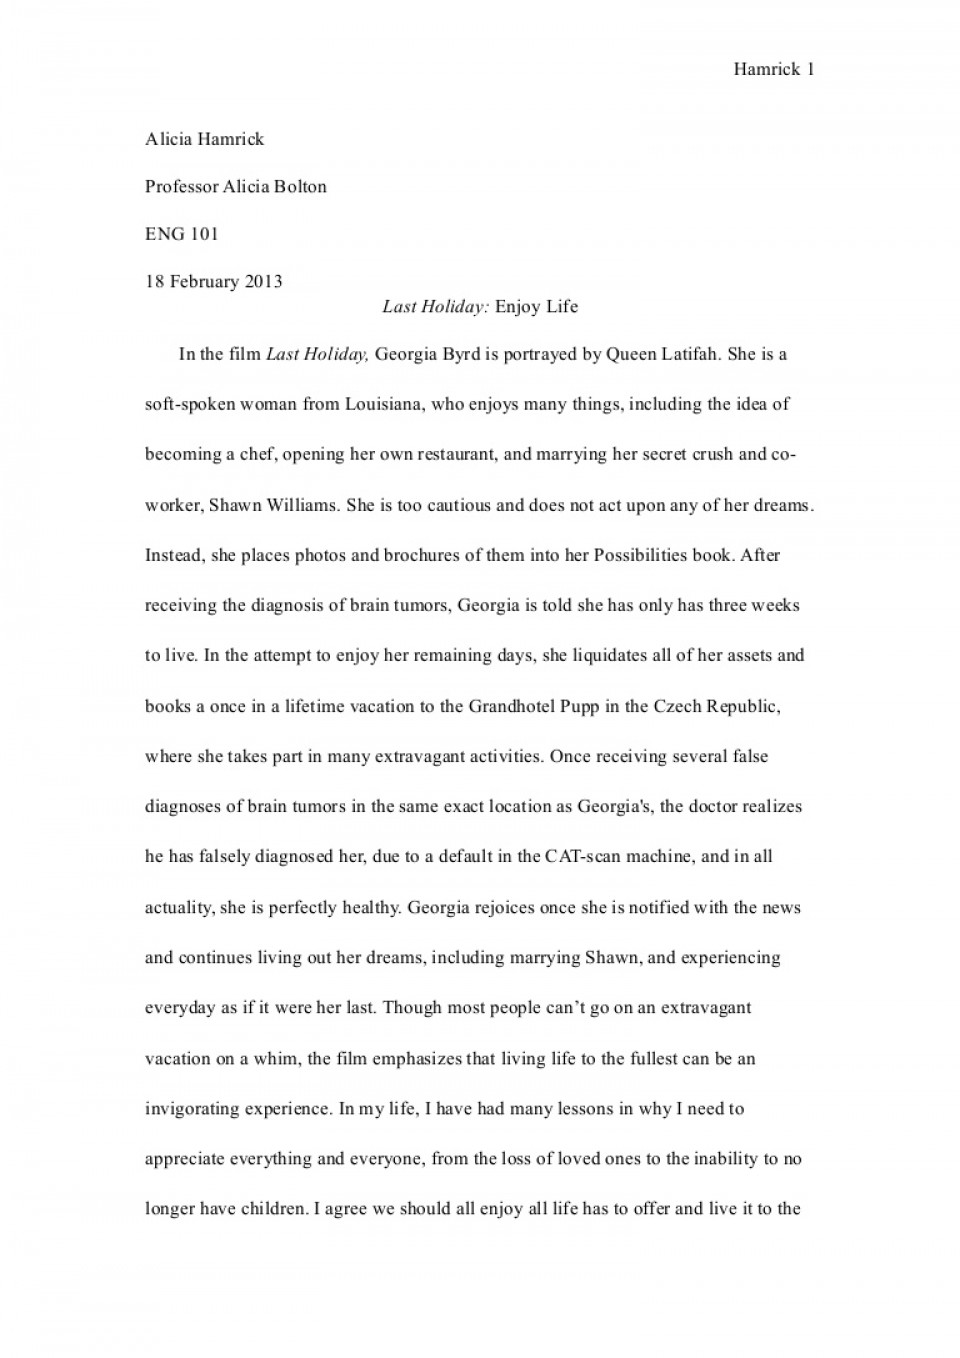 007 Essay Example On Achieving Goal Eng101essay1revisied Phpapp02 Thumbnail Stunning A Narrative 960